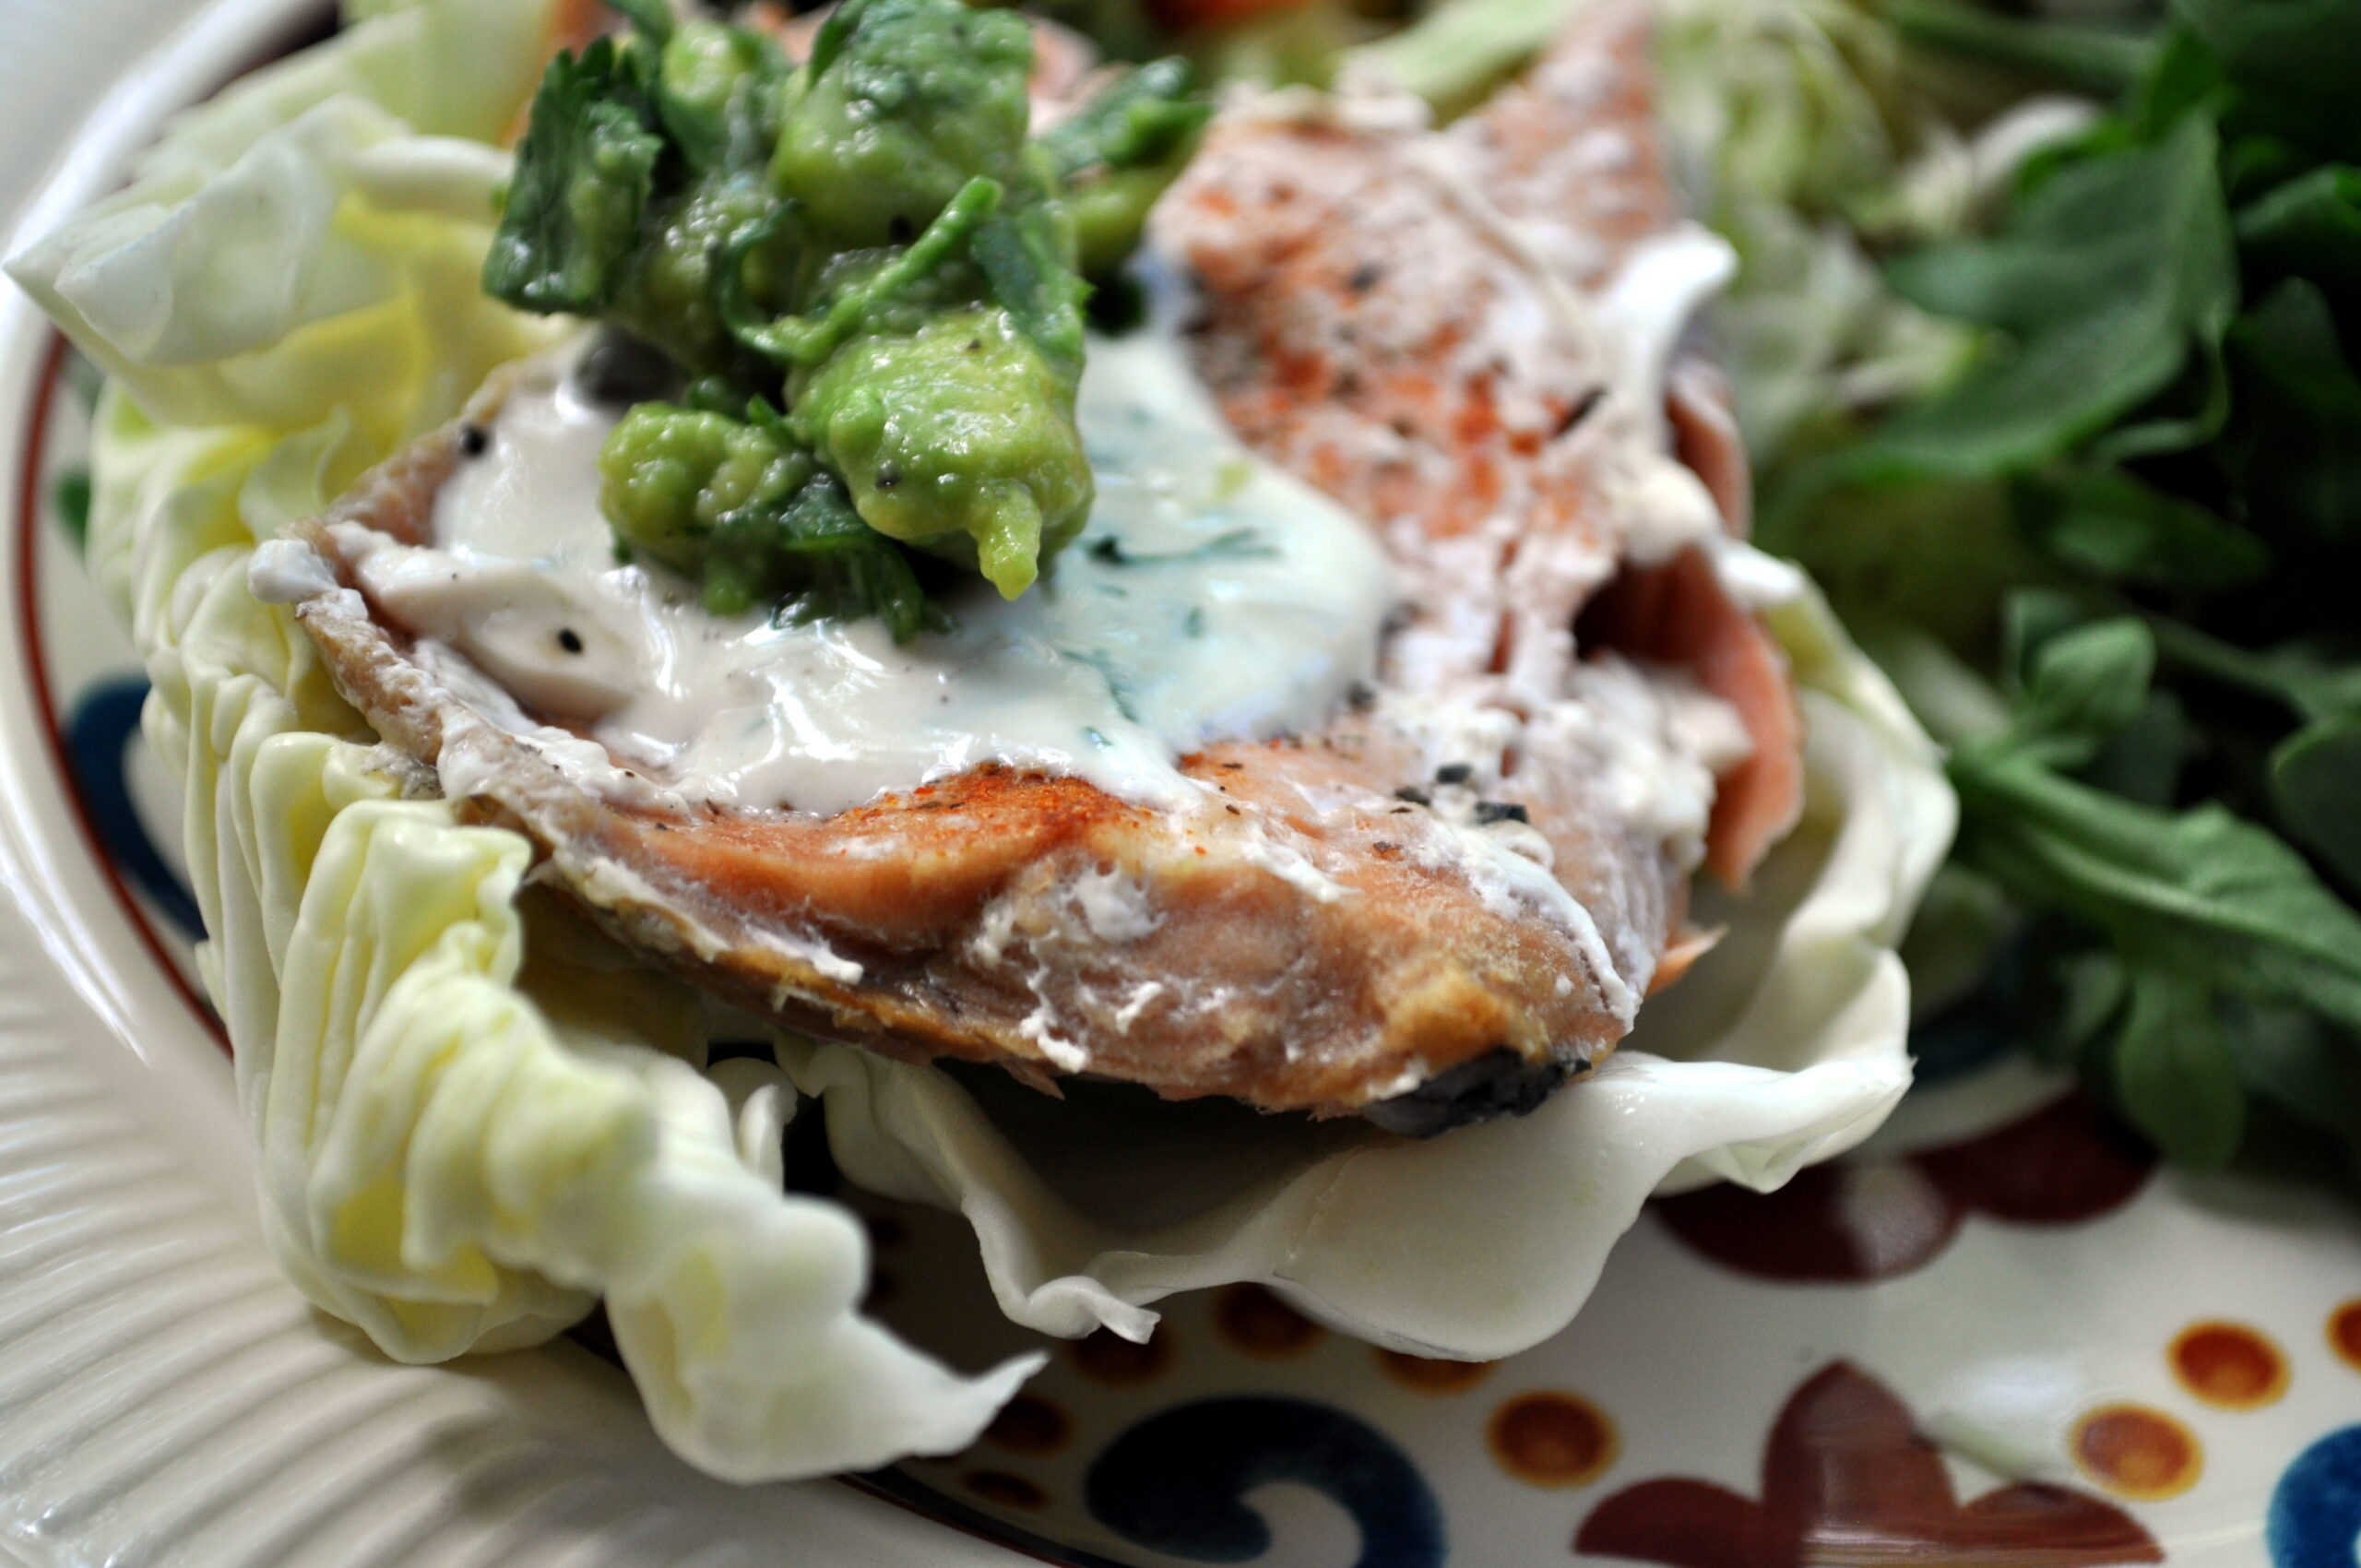 Low-Carb Bikini Diet Recipe: Salmon Salad Wraps with Coconut Dill Sauce and Smashed Peach Guacamole